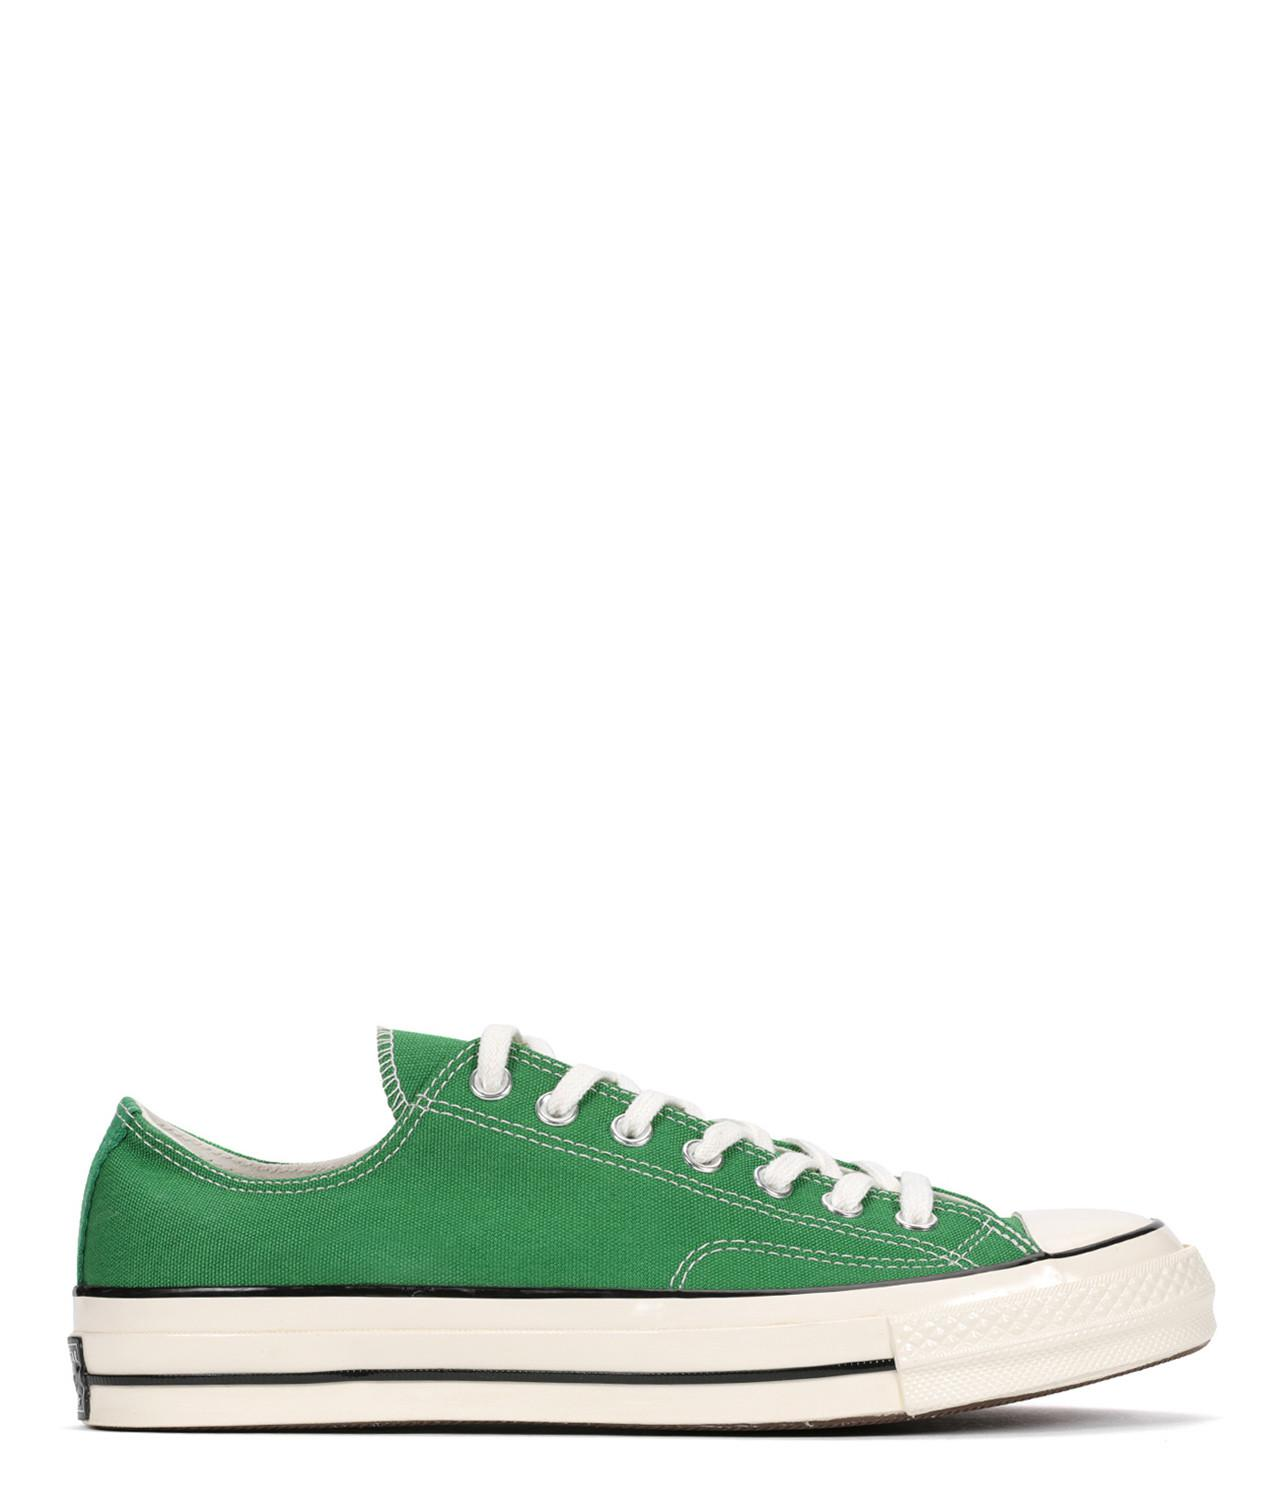 Converse Chuck Taylor All Star  70 Ox in Green for Men - Lyst 6ea341b7f